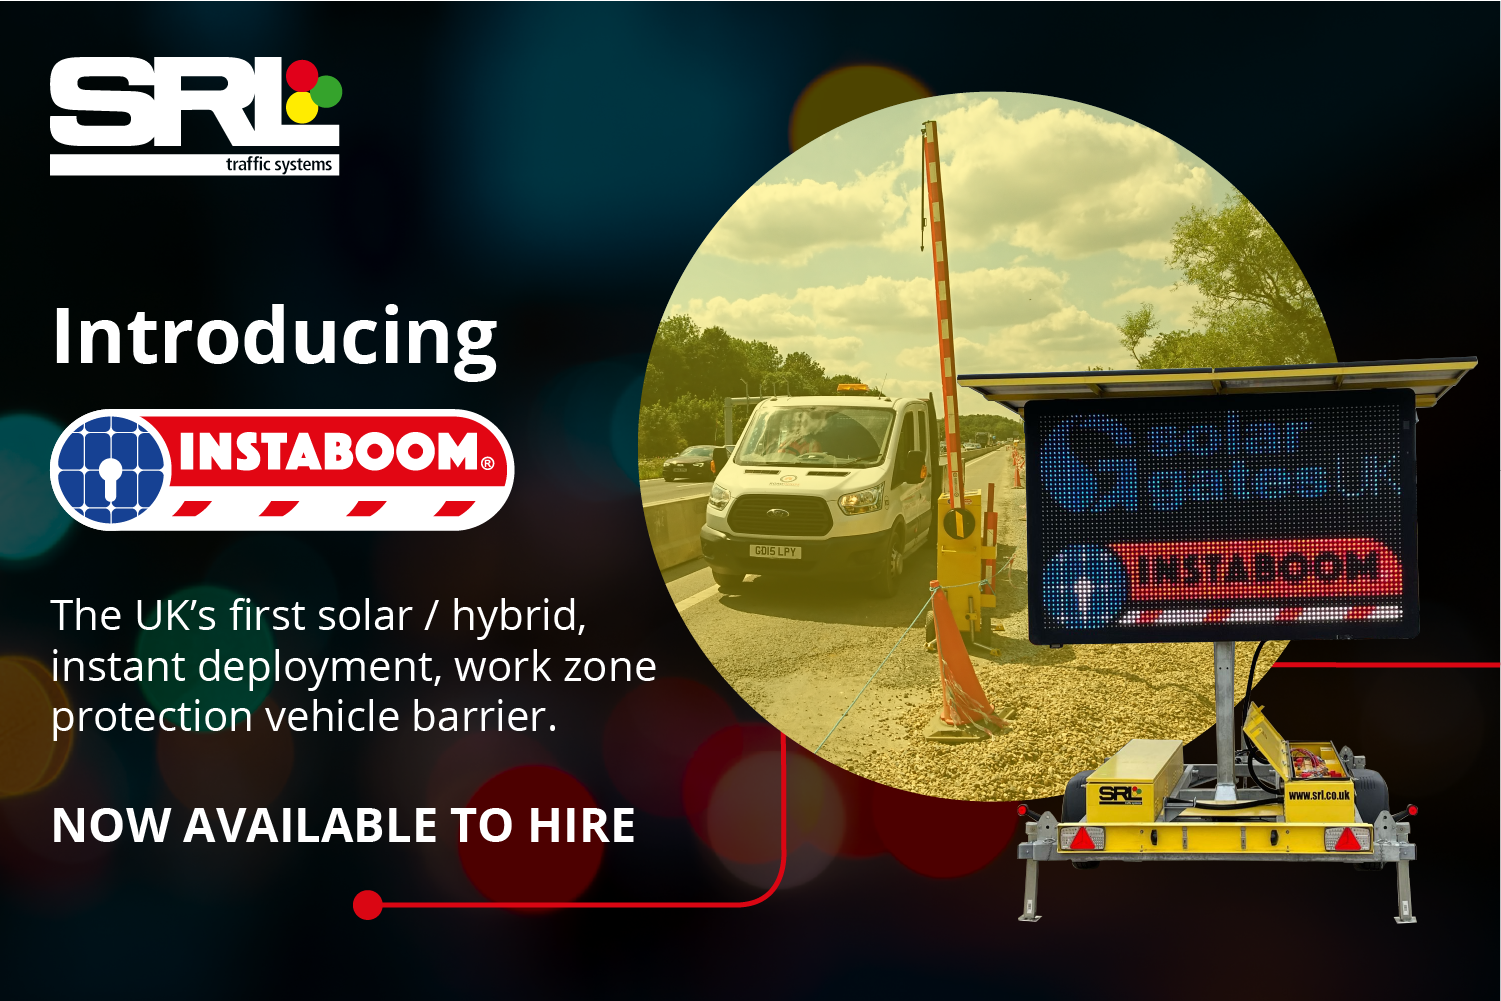 SRL takes delivery of innovative Instaboom, now available for hire